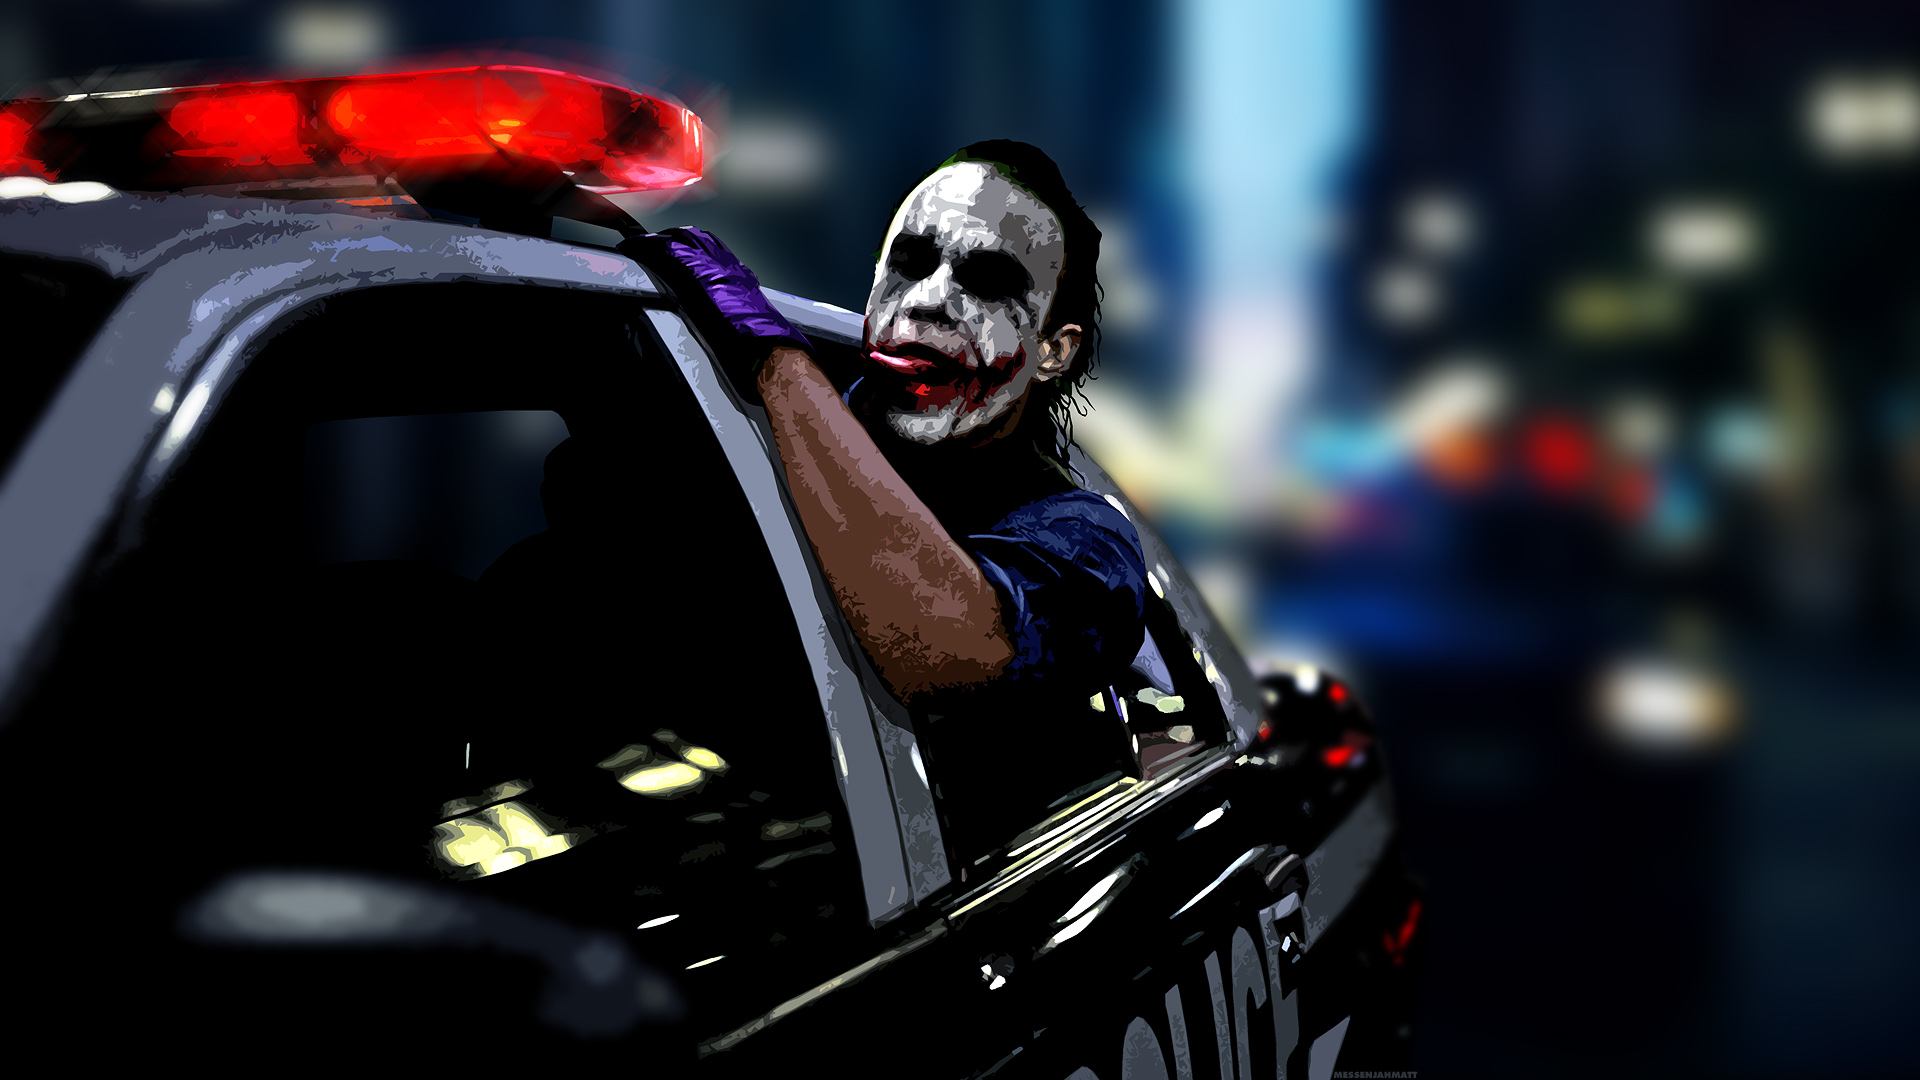 The Joker Wallpaper 1920x1080 The Joker Heath Ledger Police Cars 1920x1080